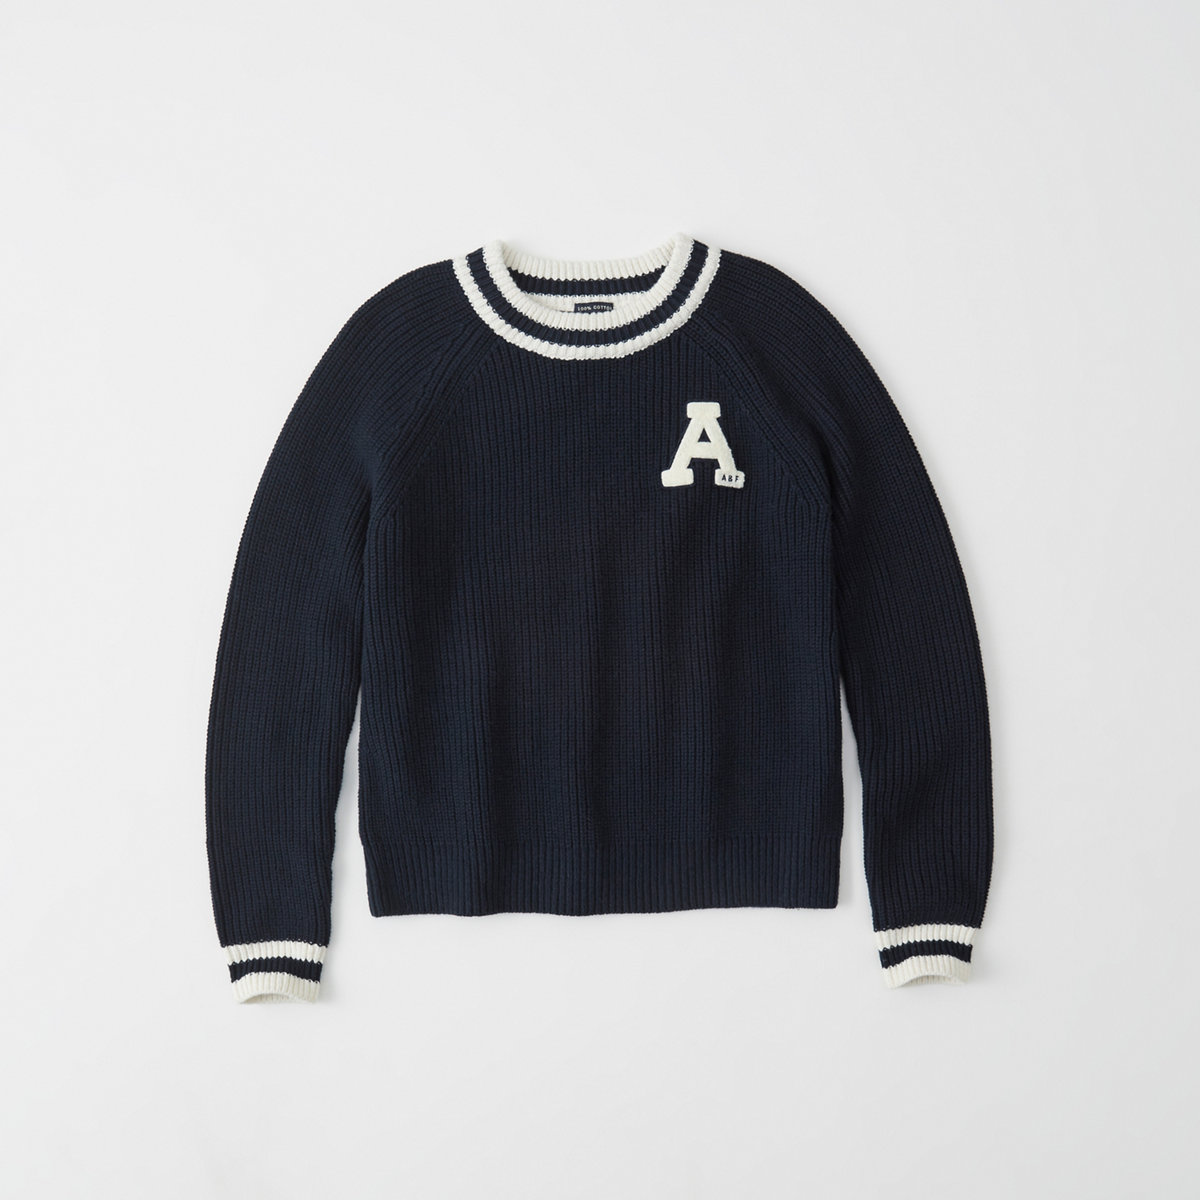 Crew neck knit varsity patch sweater